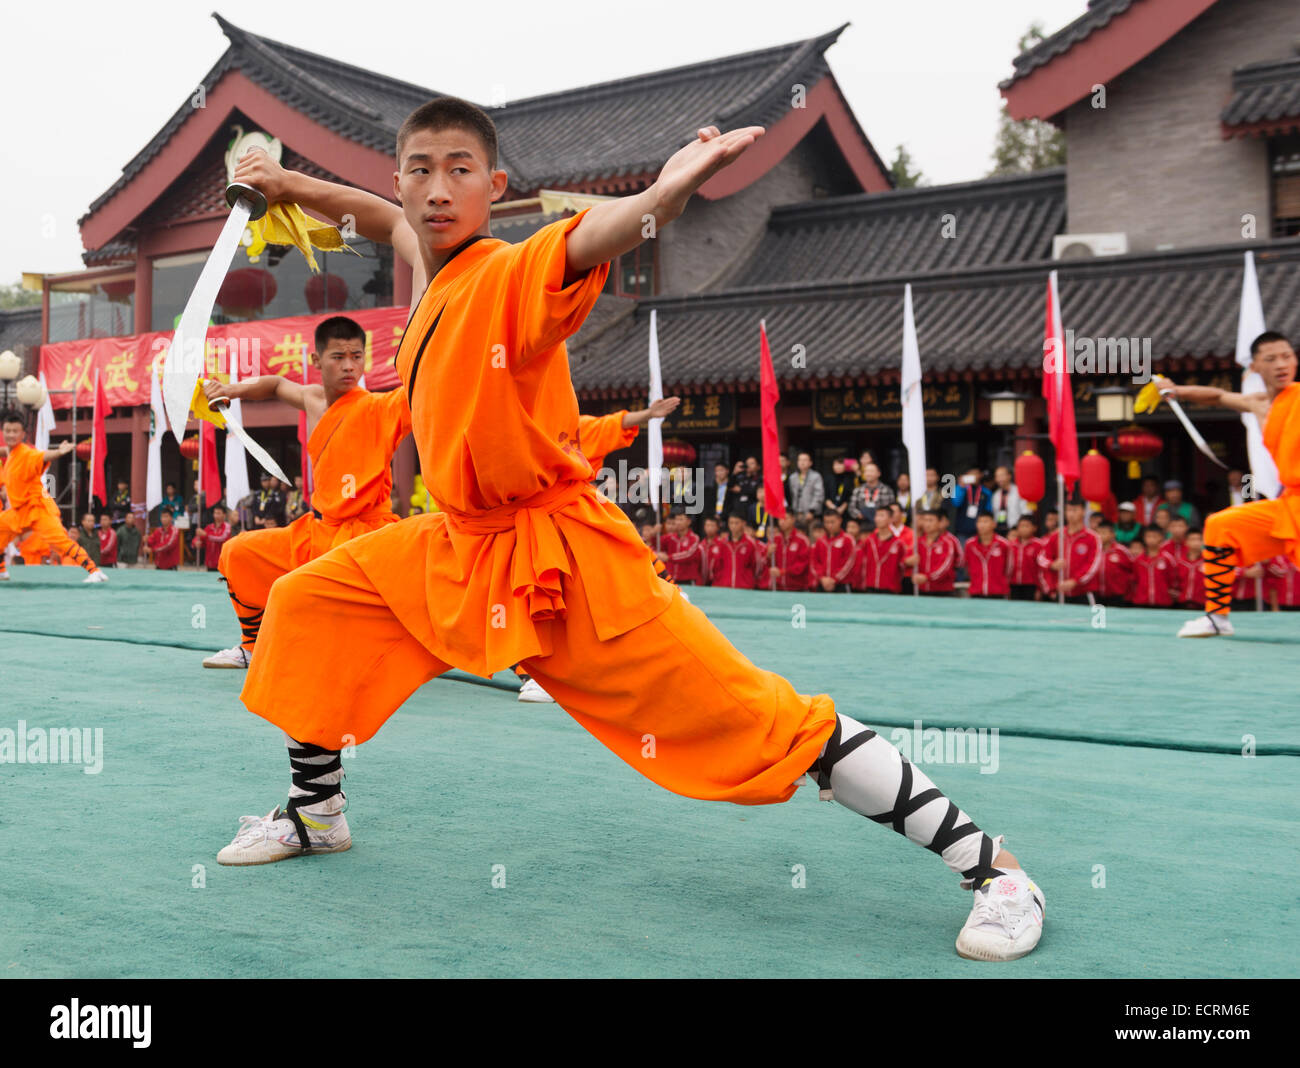 Shaolin Kung Fu student with a broad sword performing at the opening